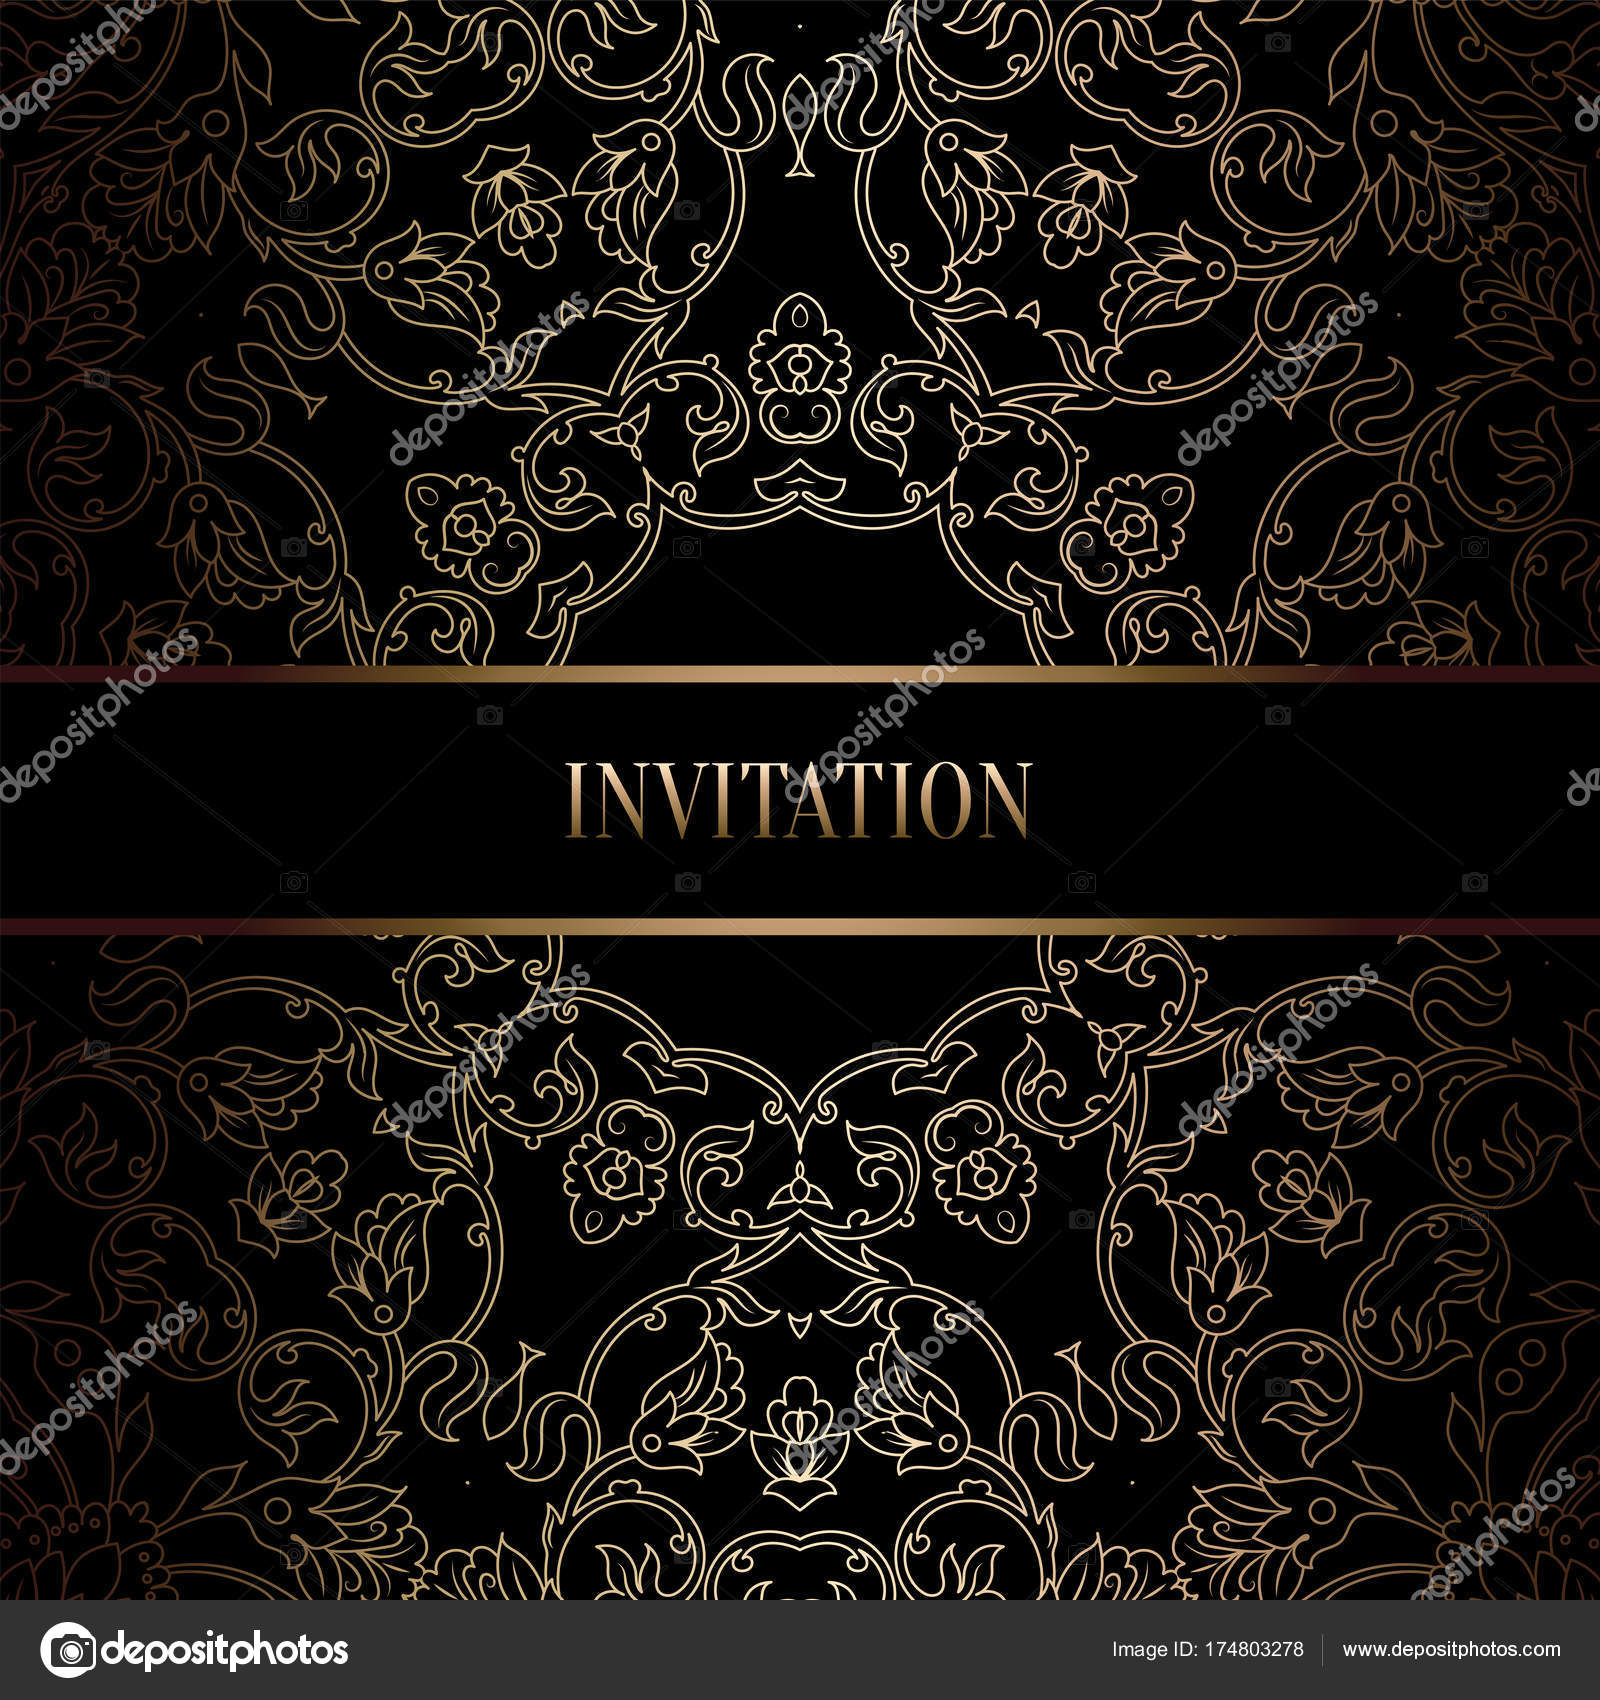 Vintage baroque Wedding Invitation template with damask background.  Tradition decoration for wedding. Vector illustration in black and gold —  Stock Vector © MiaMilky #174803278